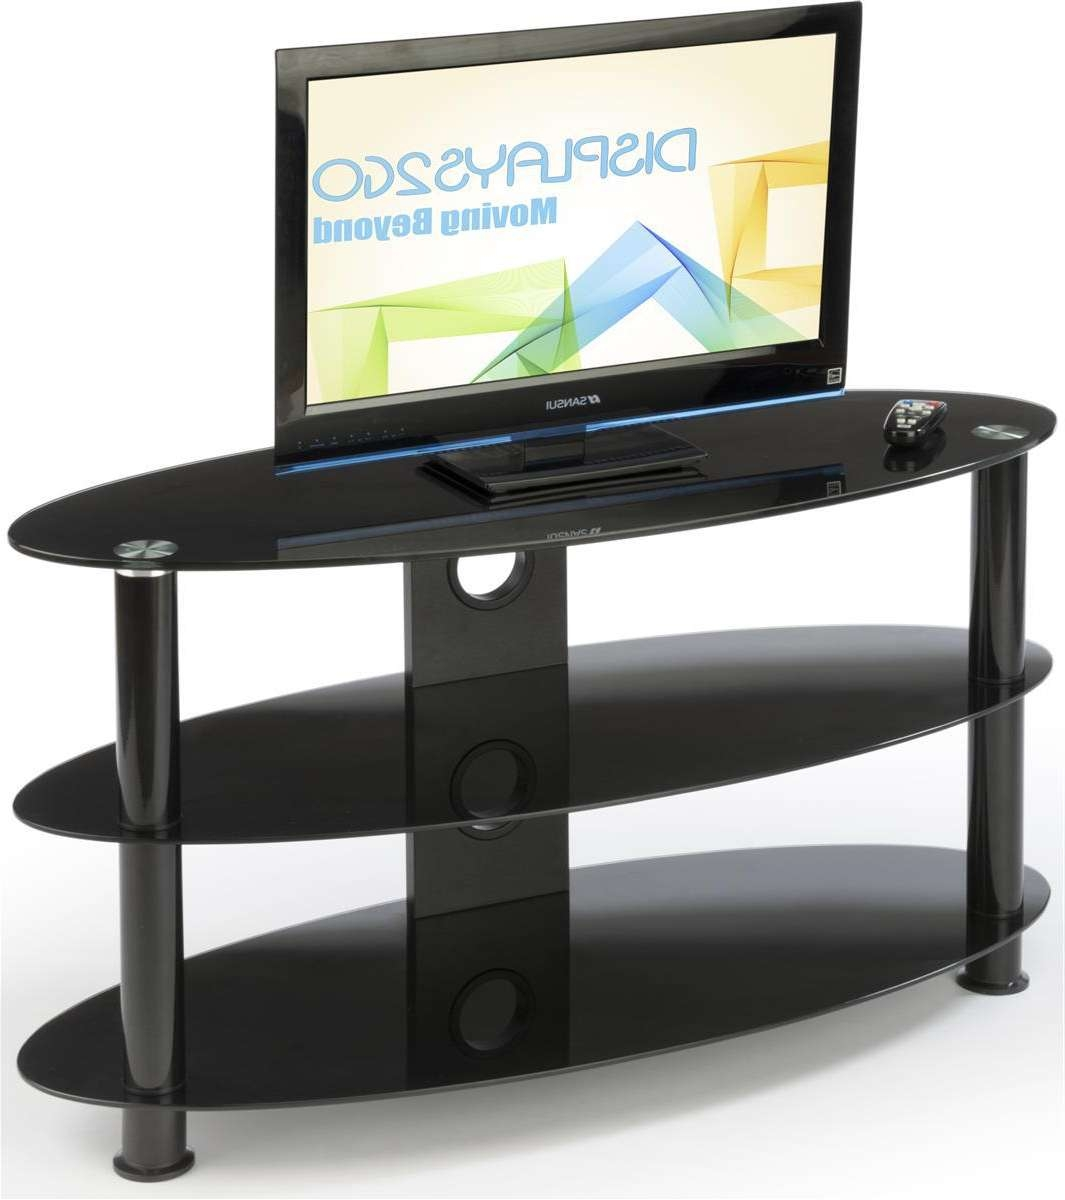 ✓ Oval Glass Tv Stand (3) Tempered Glass Shelves, Glass Tv Regarding Oval Glass Tv Stands (View 1 of 15)